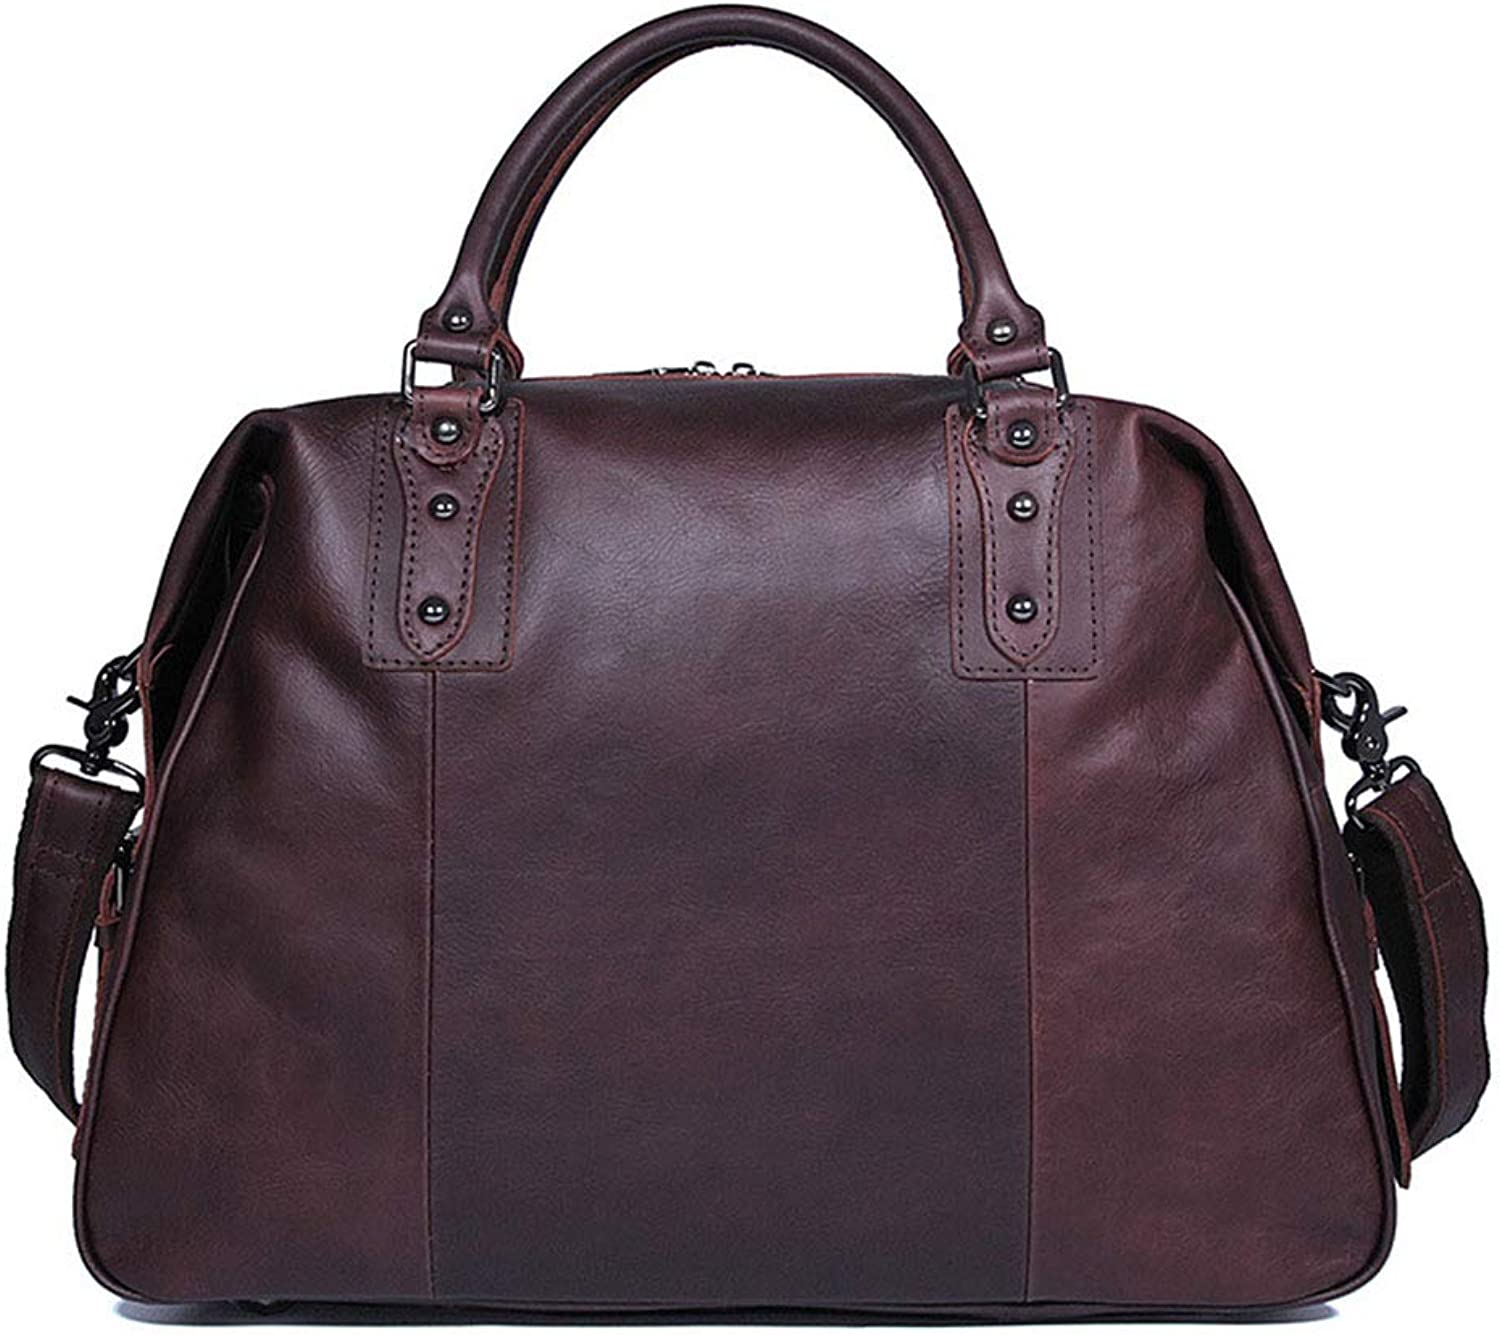 Sturdy Fashian Men's Travel Leather Handbag Oil Wax Leather Bags Business Travel Bags Large Capacity (color   Brown)